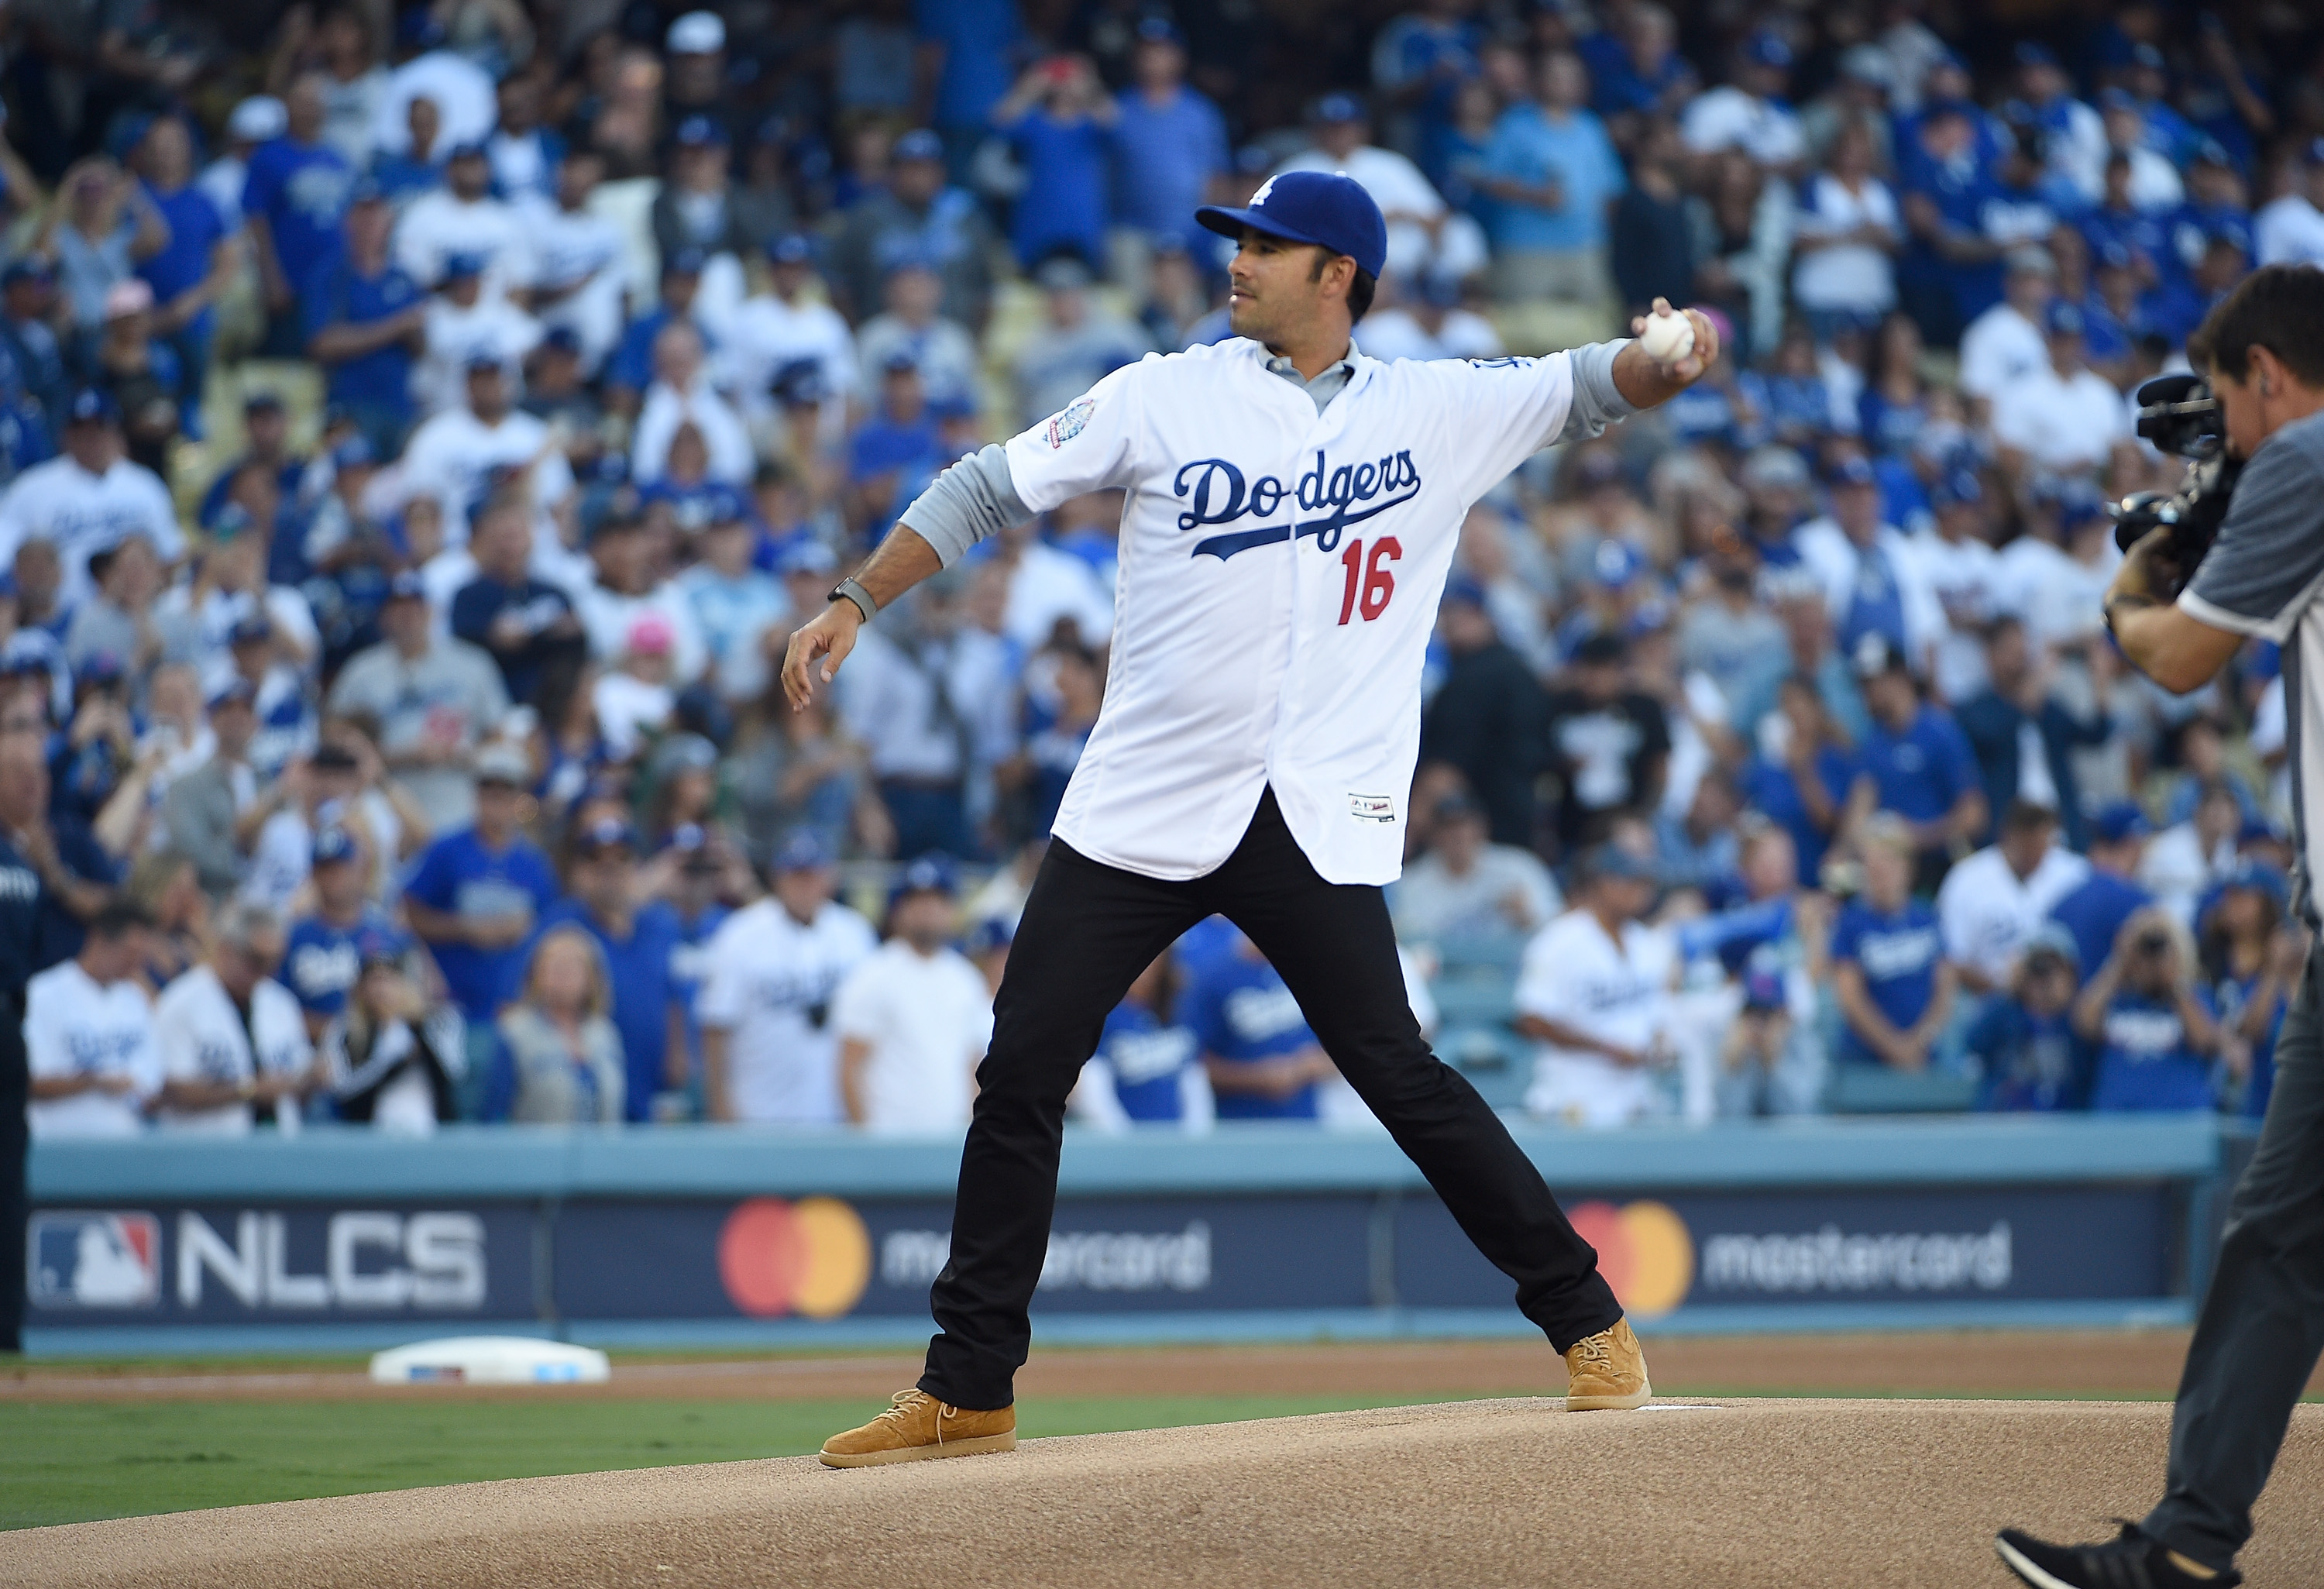 Former Los Angeles Dodgers player Andre Ethier throws out the ceremonial first pitch prior to Game 3 of the National League Championship Series between the Milwaukee Brewers and the Los Angeles Dodgers at Dodger Stadium on October 15, 2018 in Los Angeles, California. (Photo by Kevork Djansezian/Getty Images)